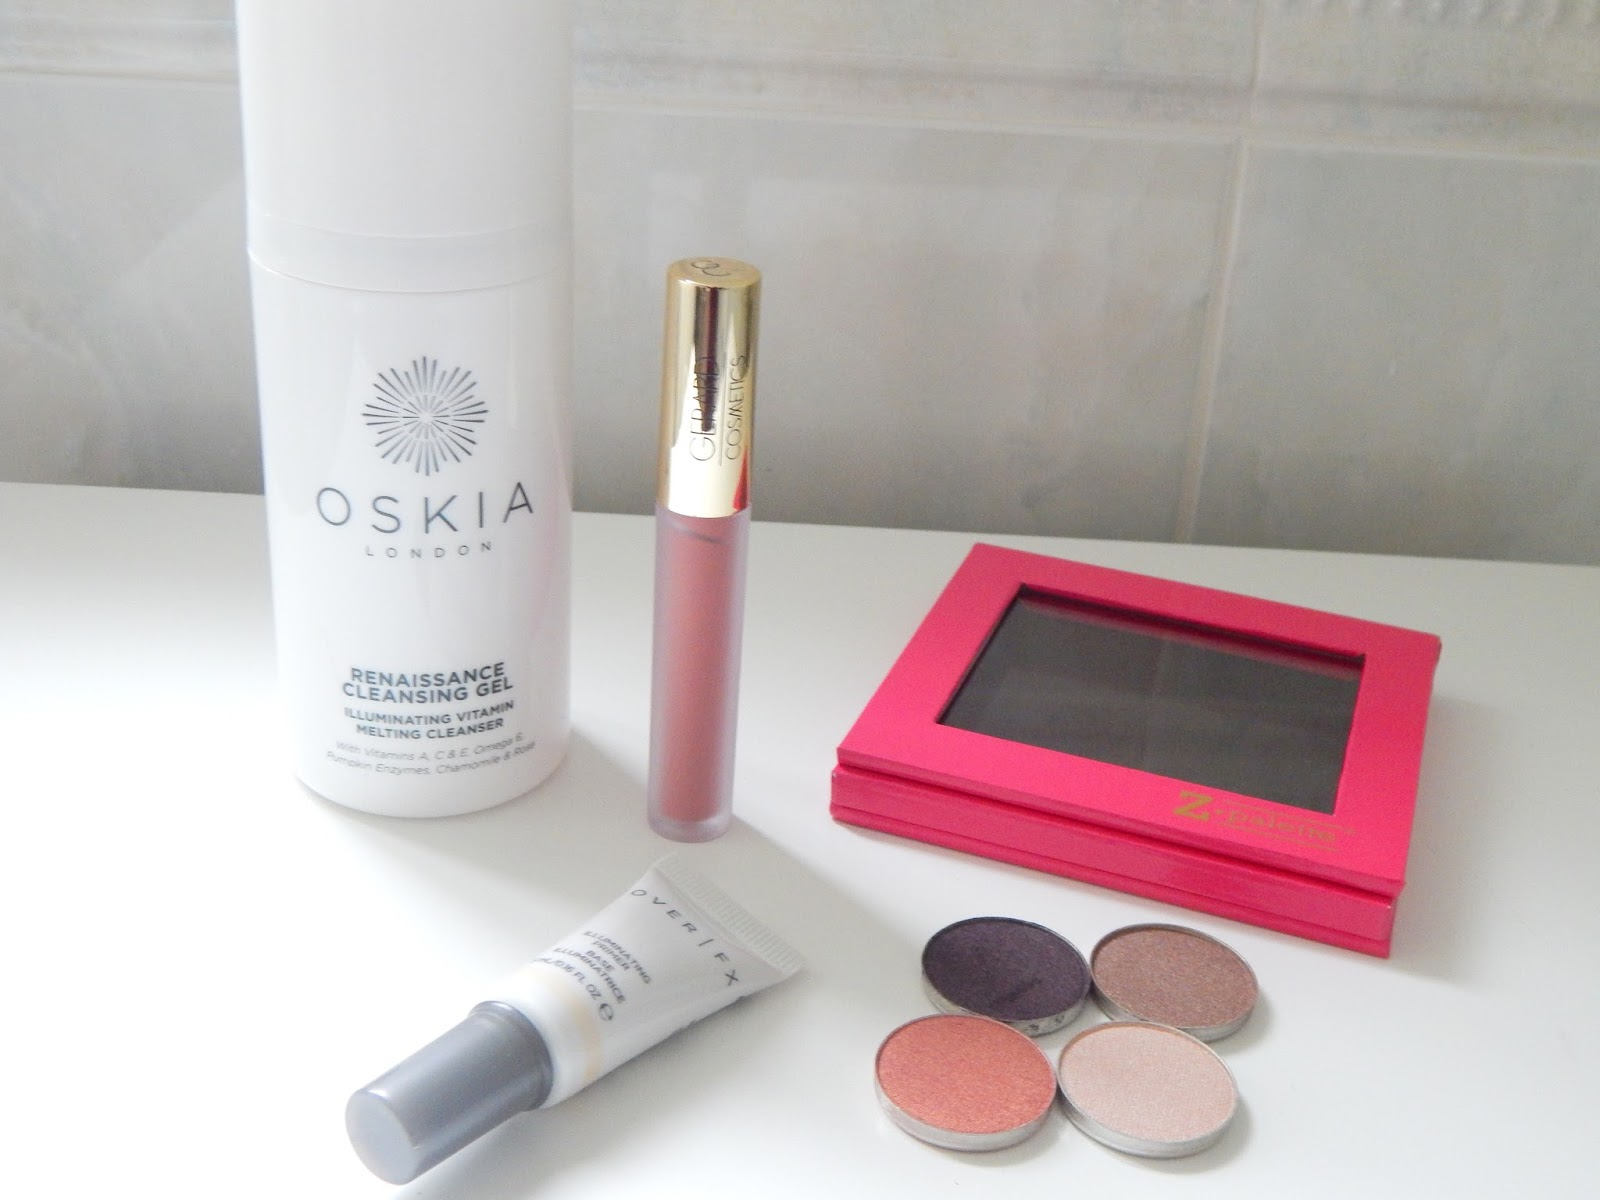 Beauty Bay haul featuring Oskia, Makeup Geek, Gerard Cosmetics and Cover FX